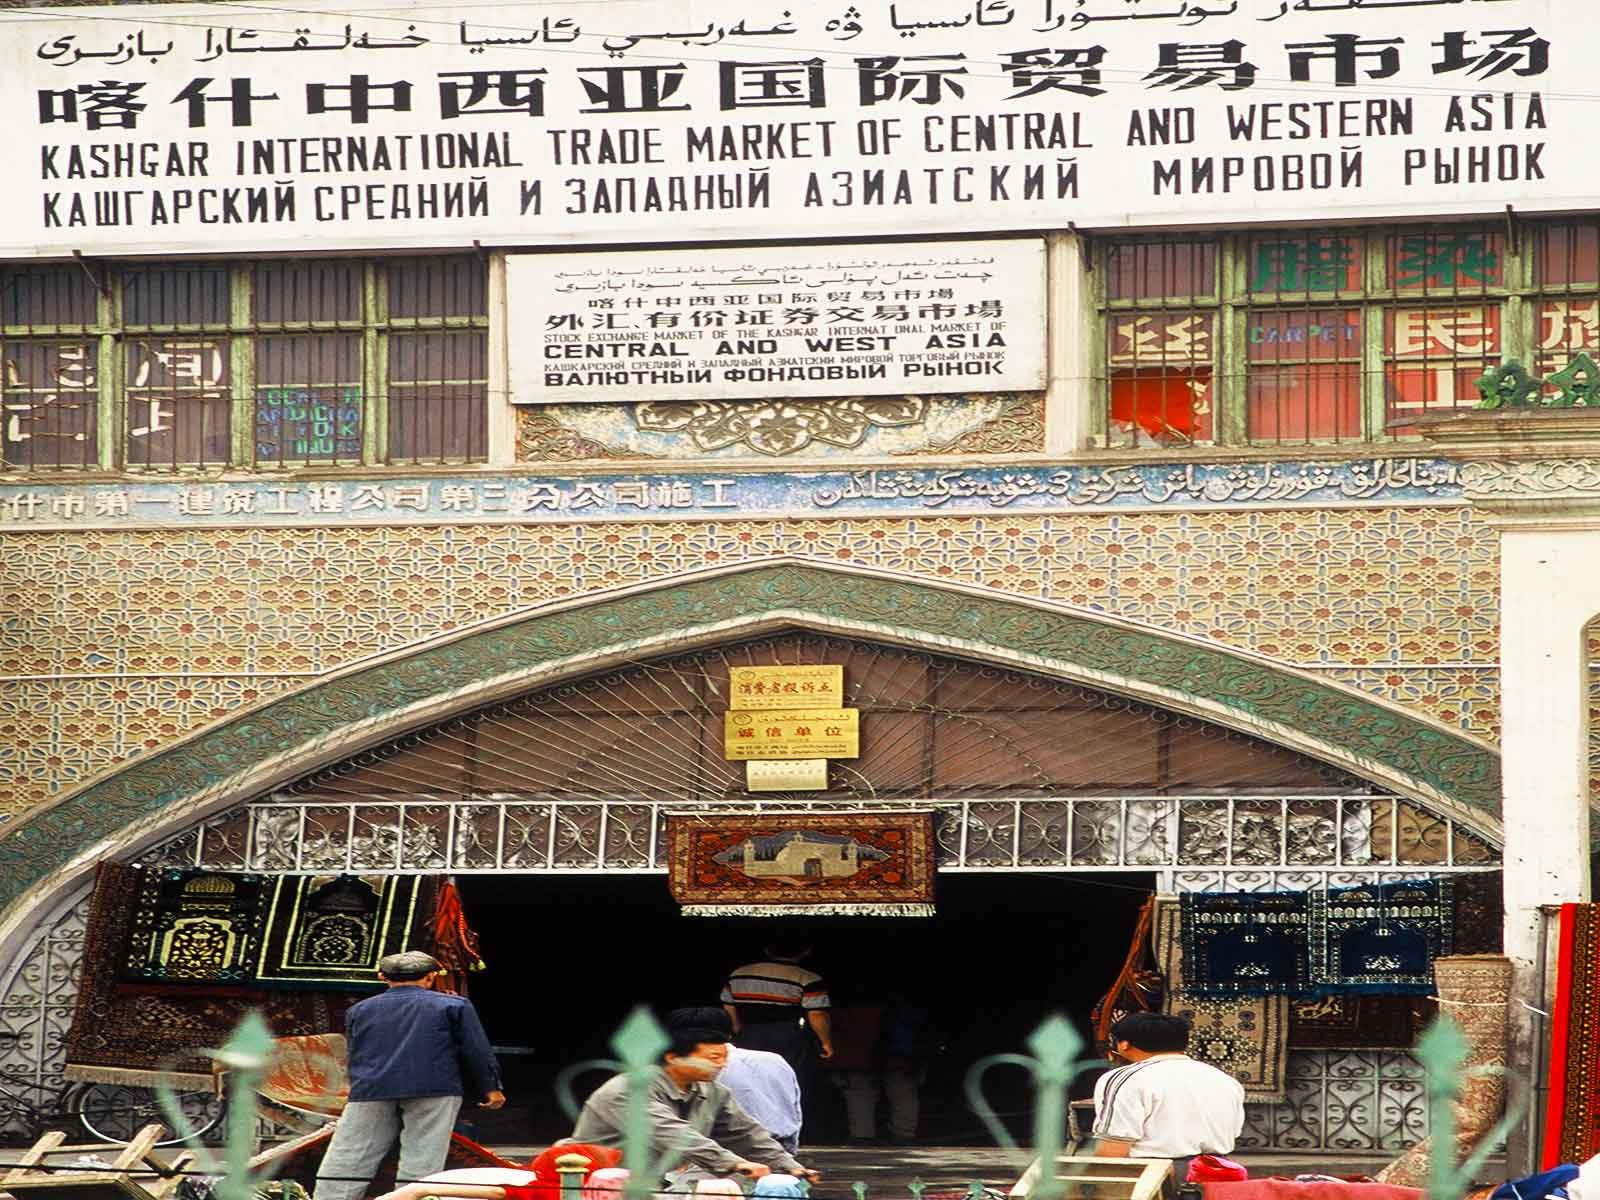 Kashgar International Trade Market - Silk Road photo journal - Steven Andrew Martin - study abroad field research